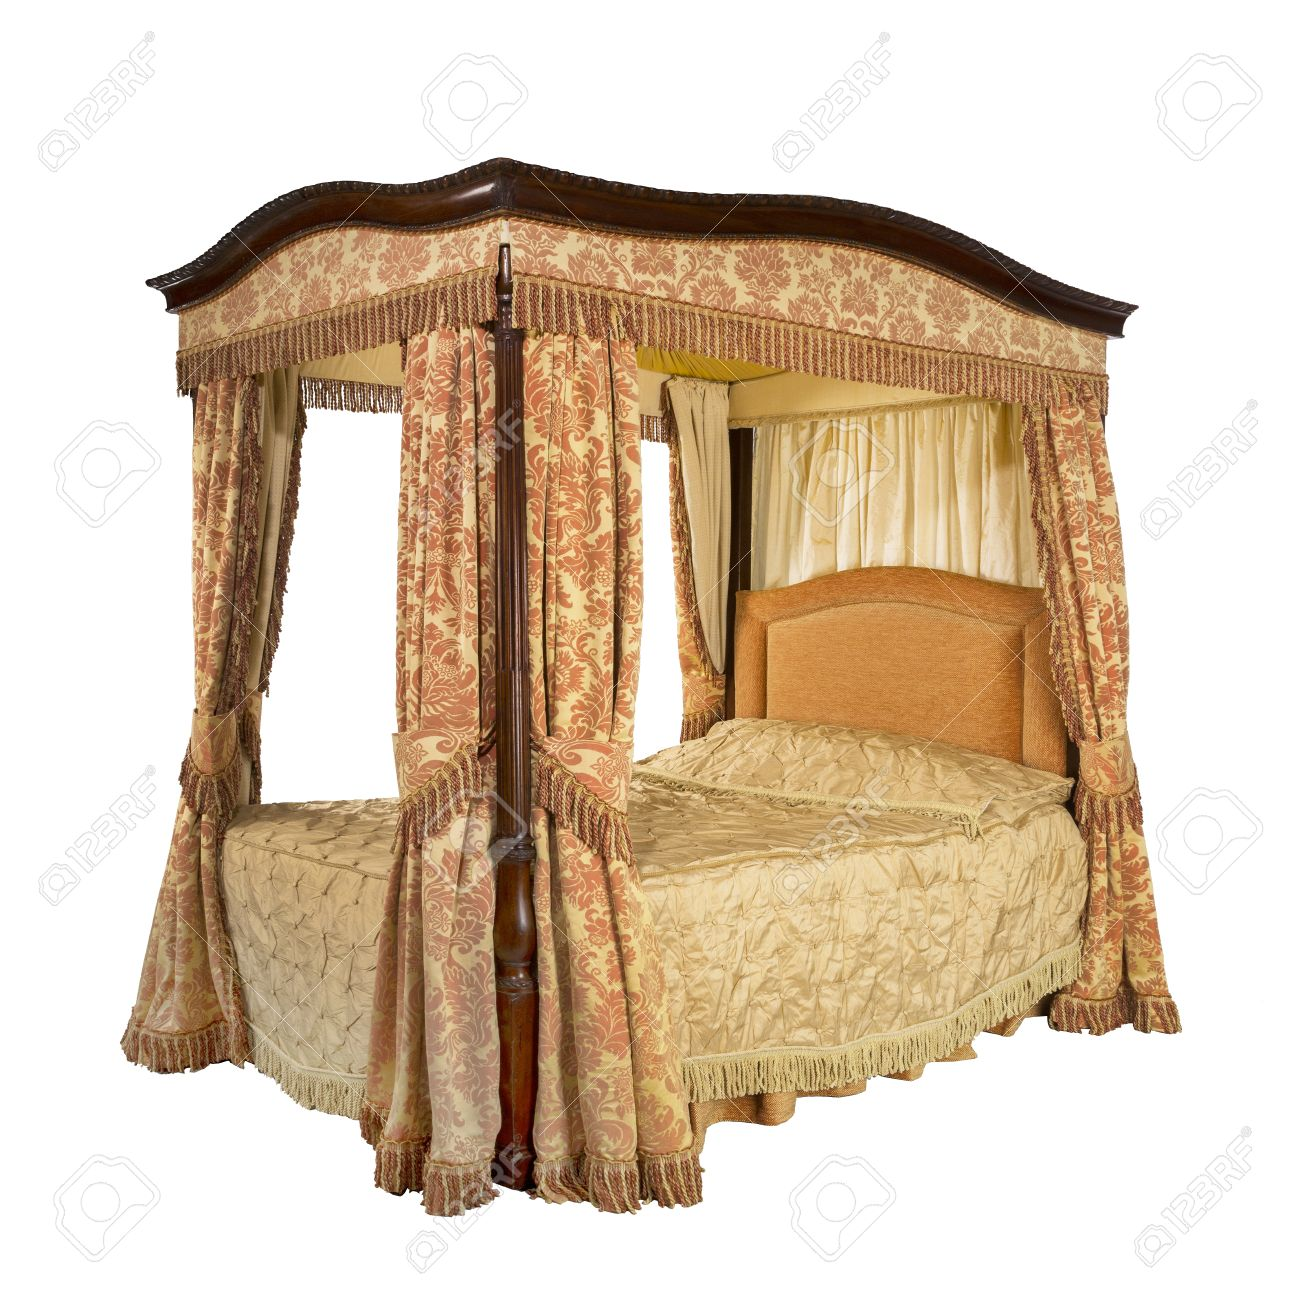 Picture of: Old Vintage Four Poster Bed With Drapes And Curtains Isolated Stock Photo Picture And Royalty Free Image Image 44194341